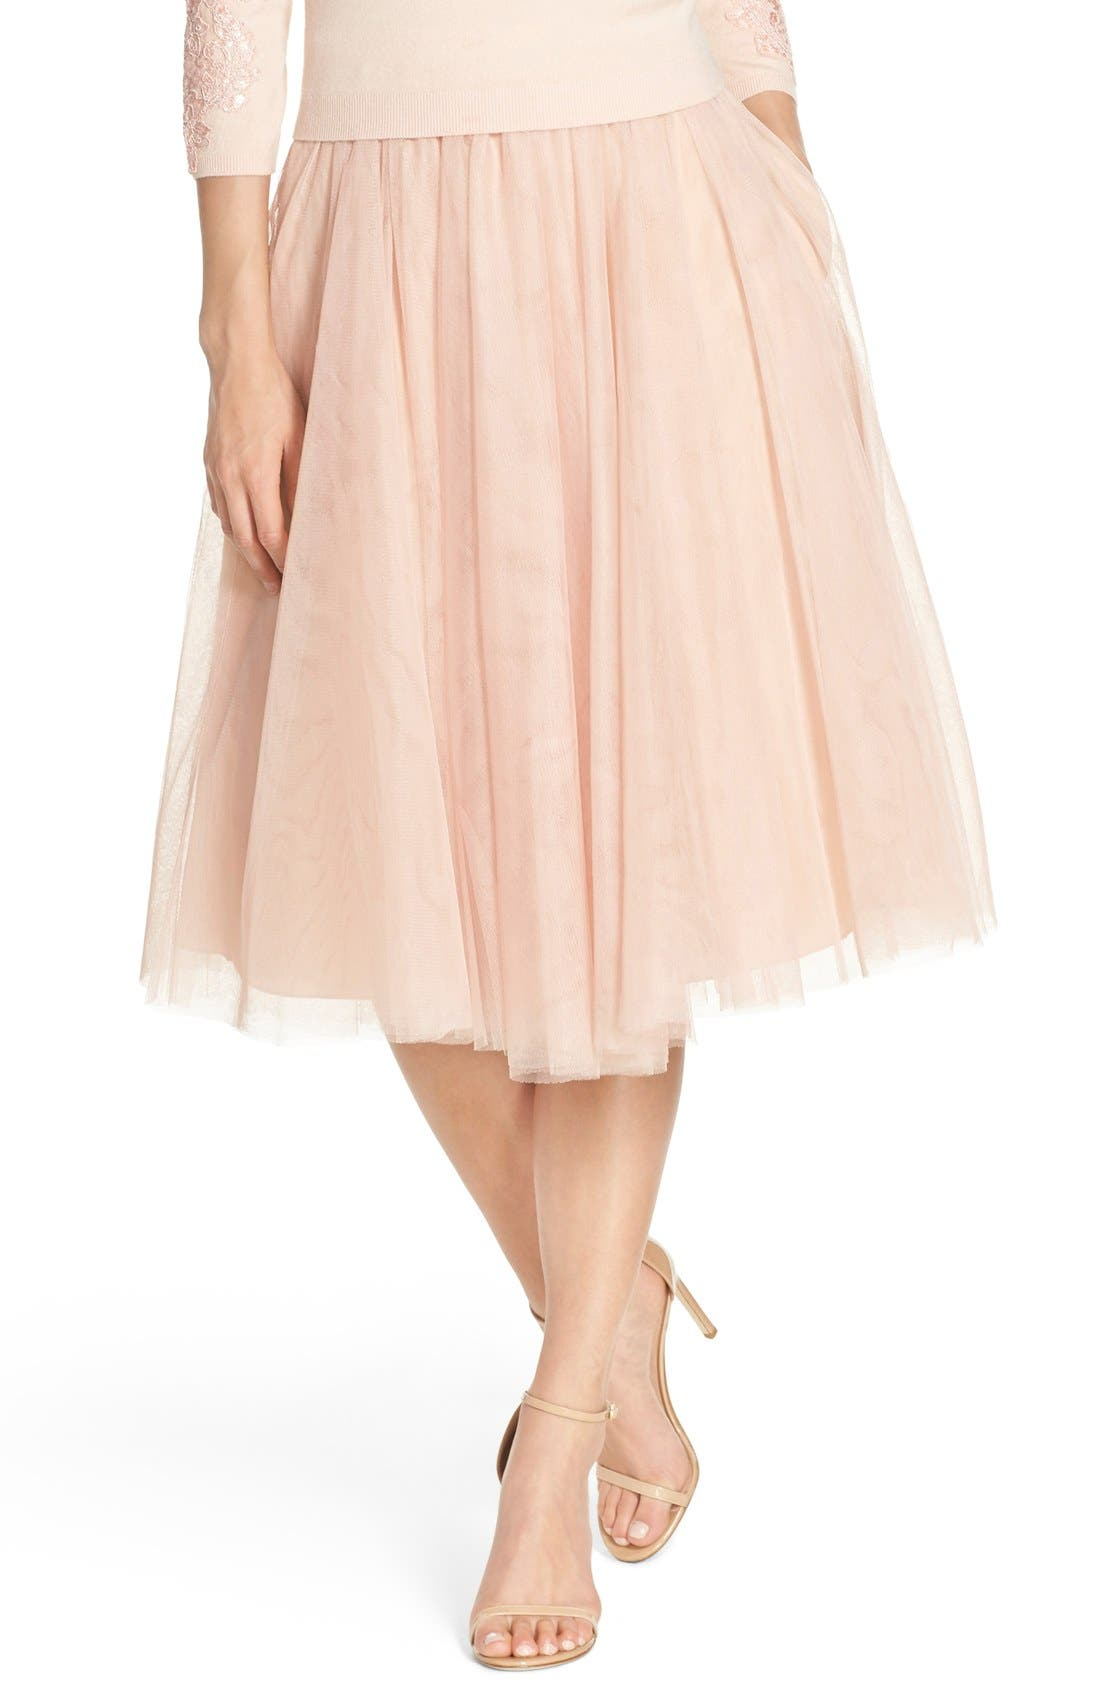 Lucy Tulle Skirt,                             Main thumbnail 3, color,